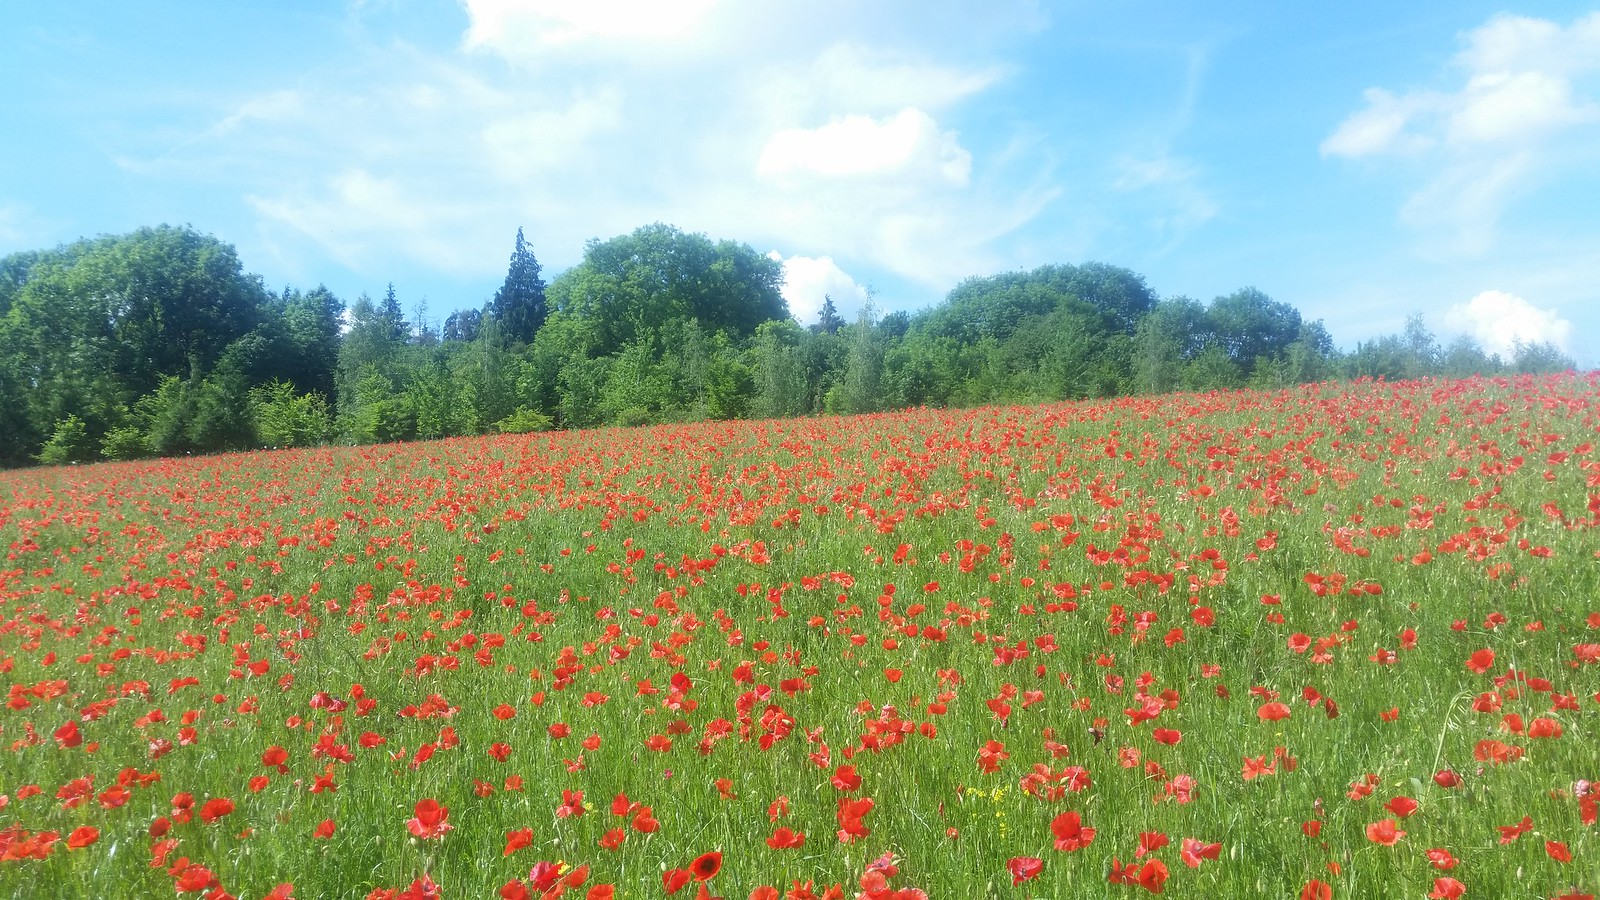 Carpet of poppies at Unhill Bottom near Moulsford 3 June 2018